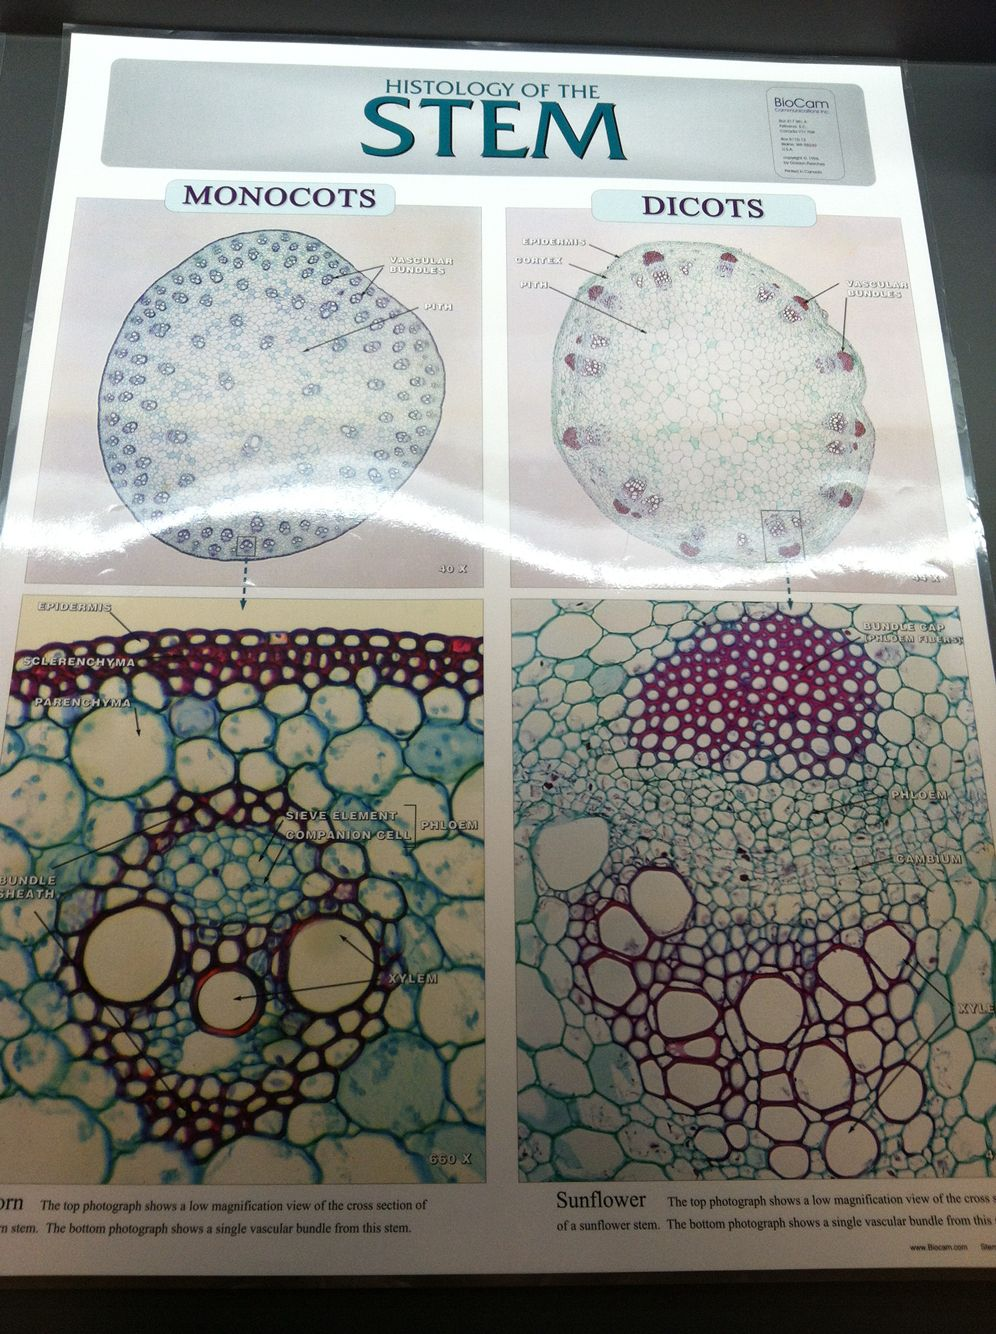 Monocot vs dicot plant stem cells | Escuela | Pinterest | Plant stem ...